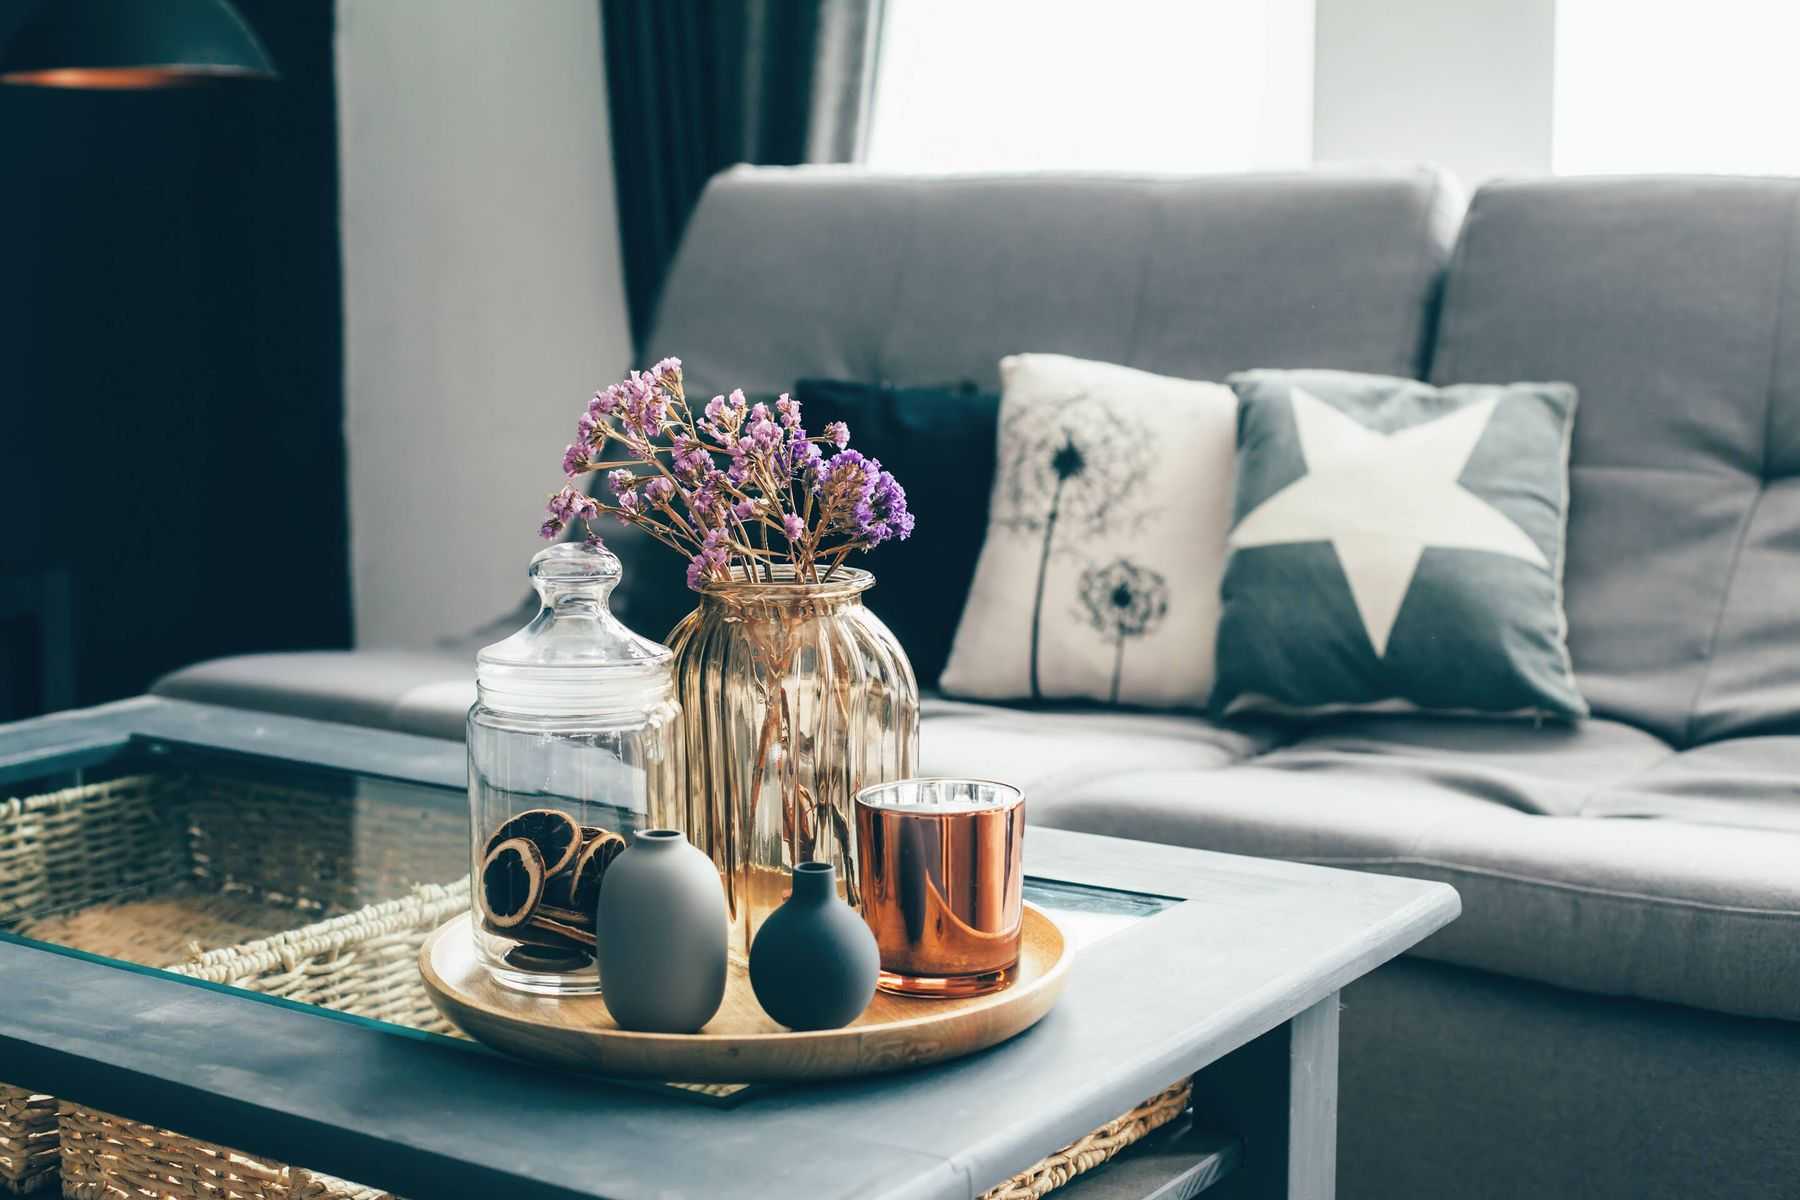 living room with gray sofa, pillows and decorative objects